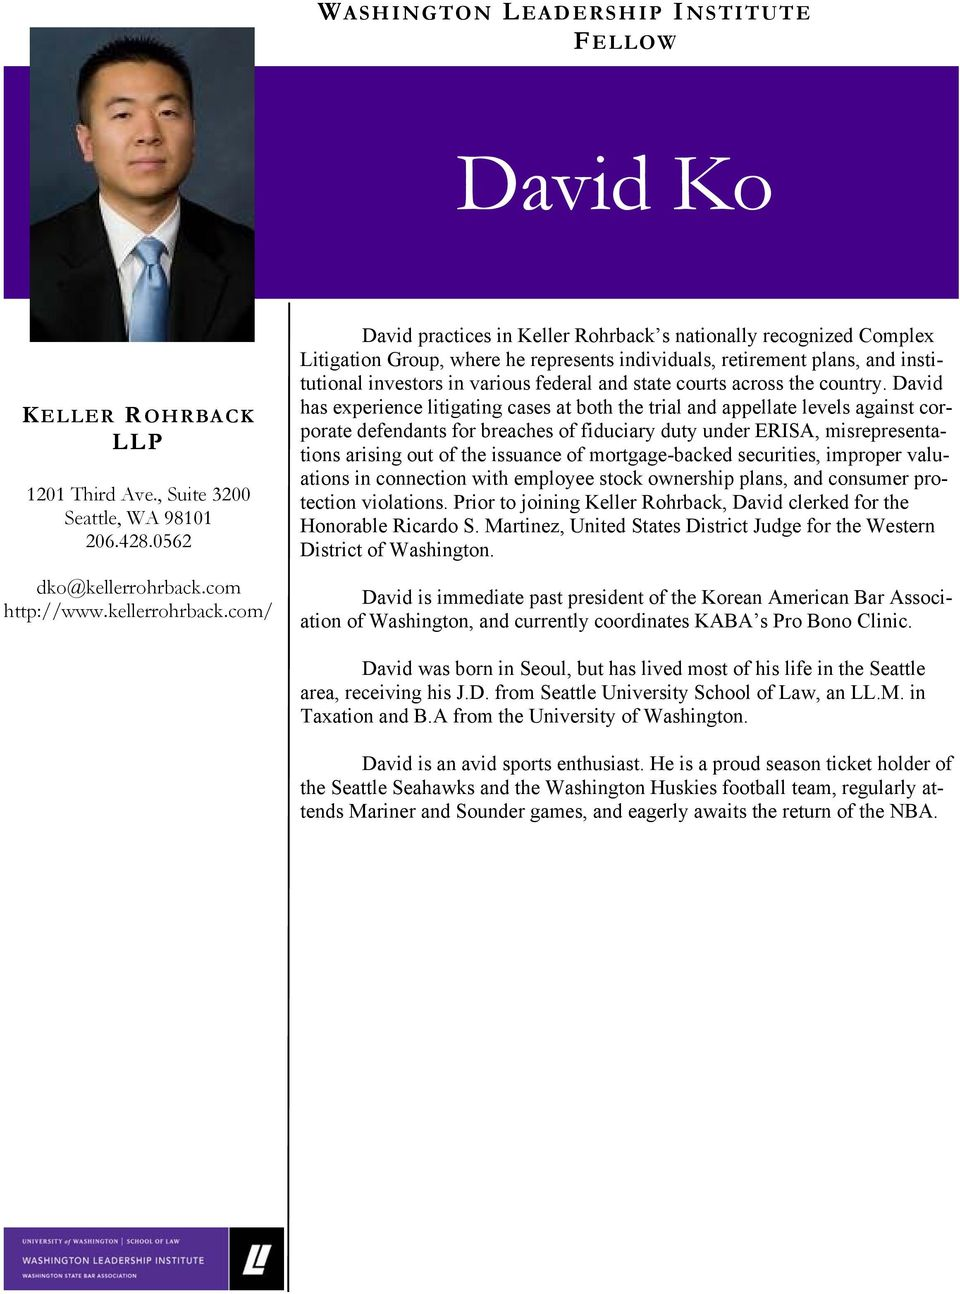 com/ David practices in Keller Rohrback s nationally recognized Complex Litigation Group, where he represents individuals, retirement plans, and institutional investors in various federal and state